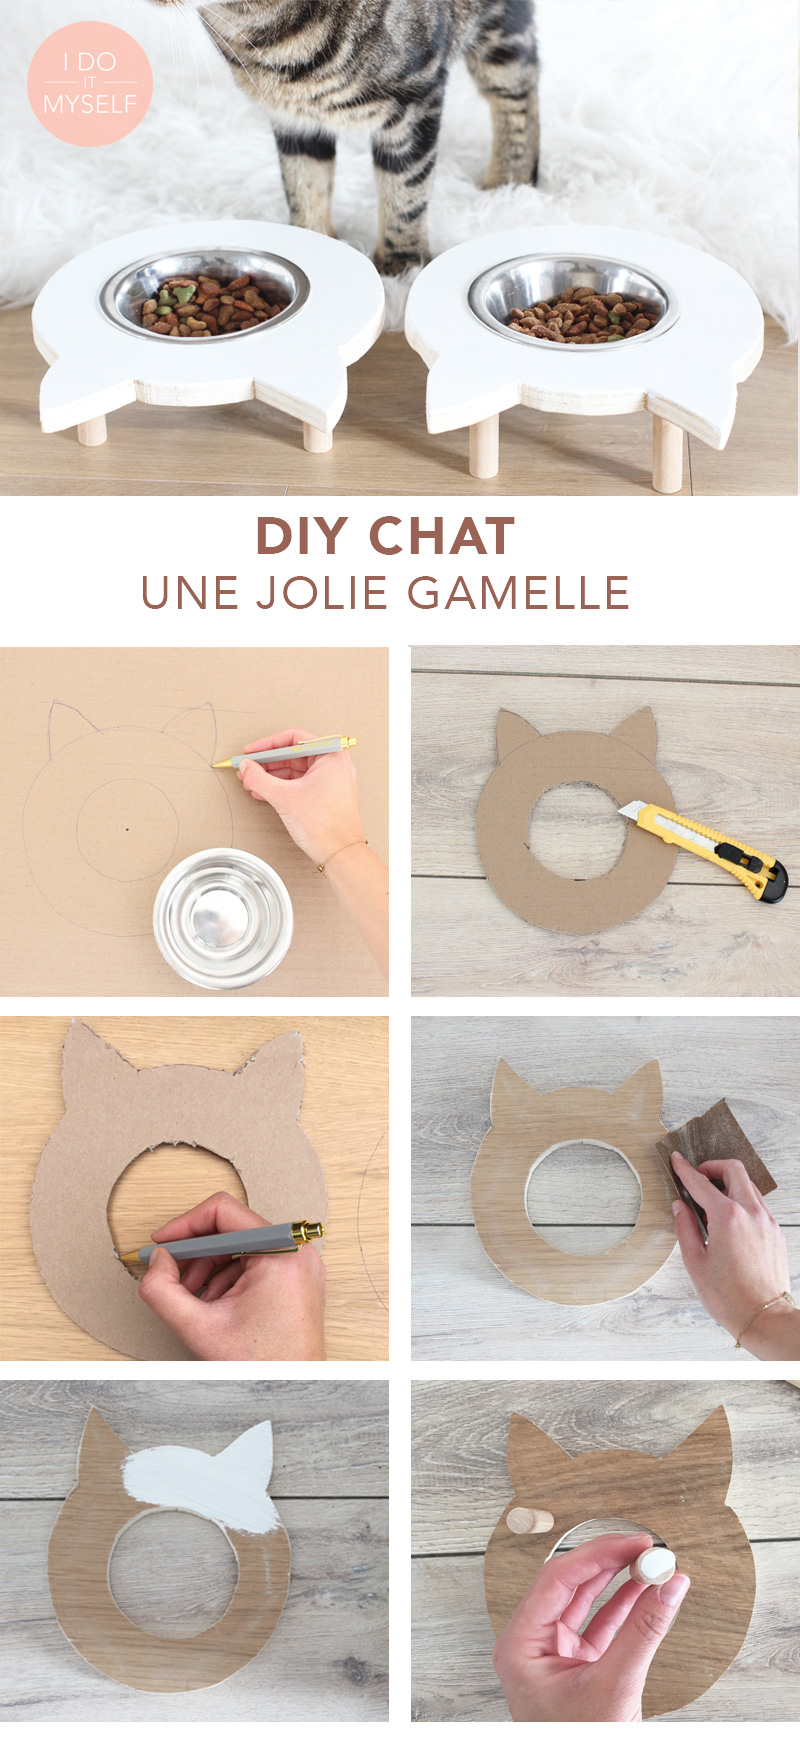 Easy cat DIY